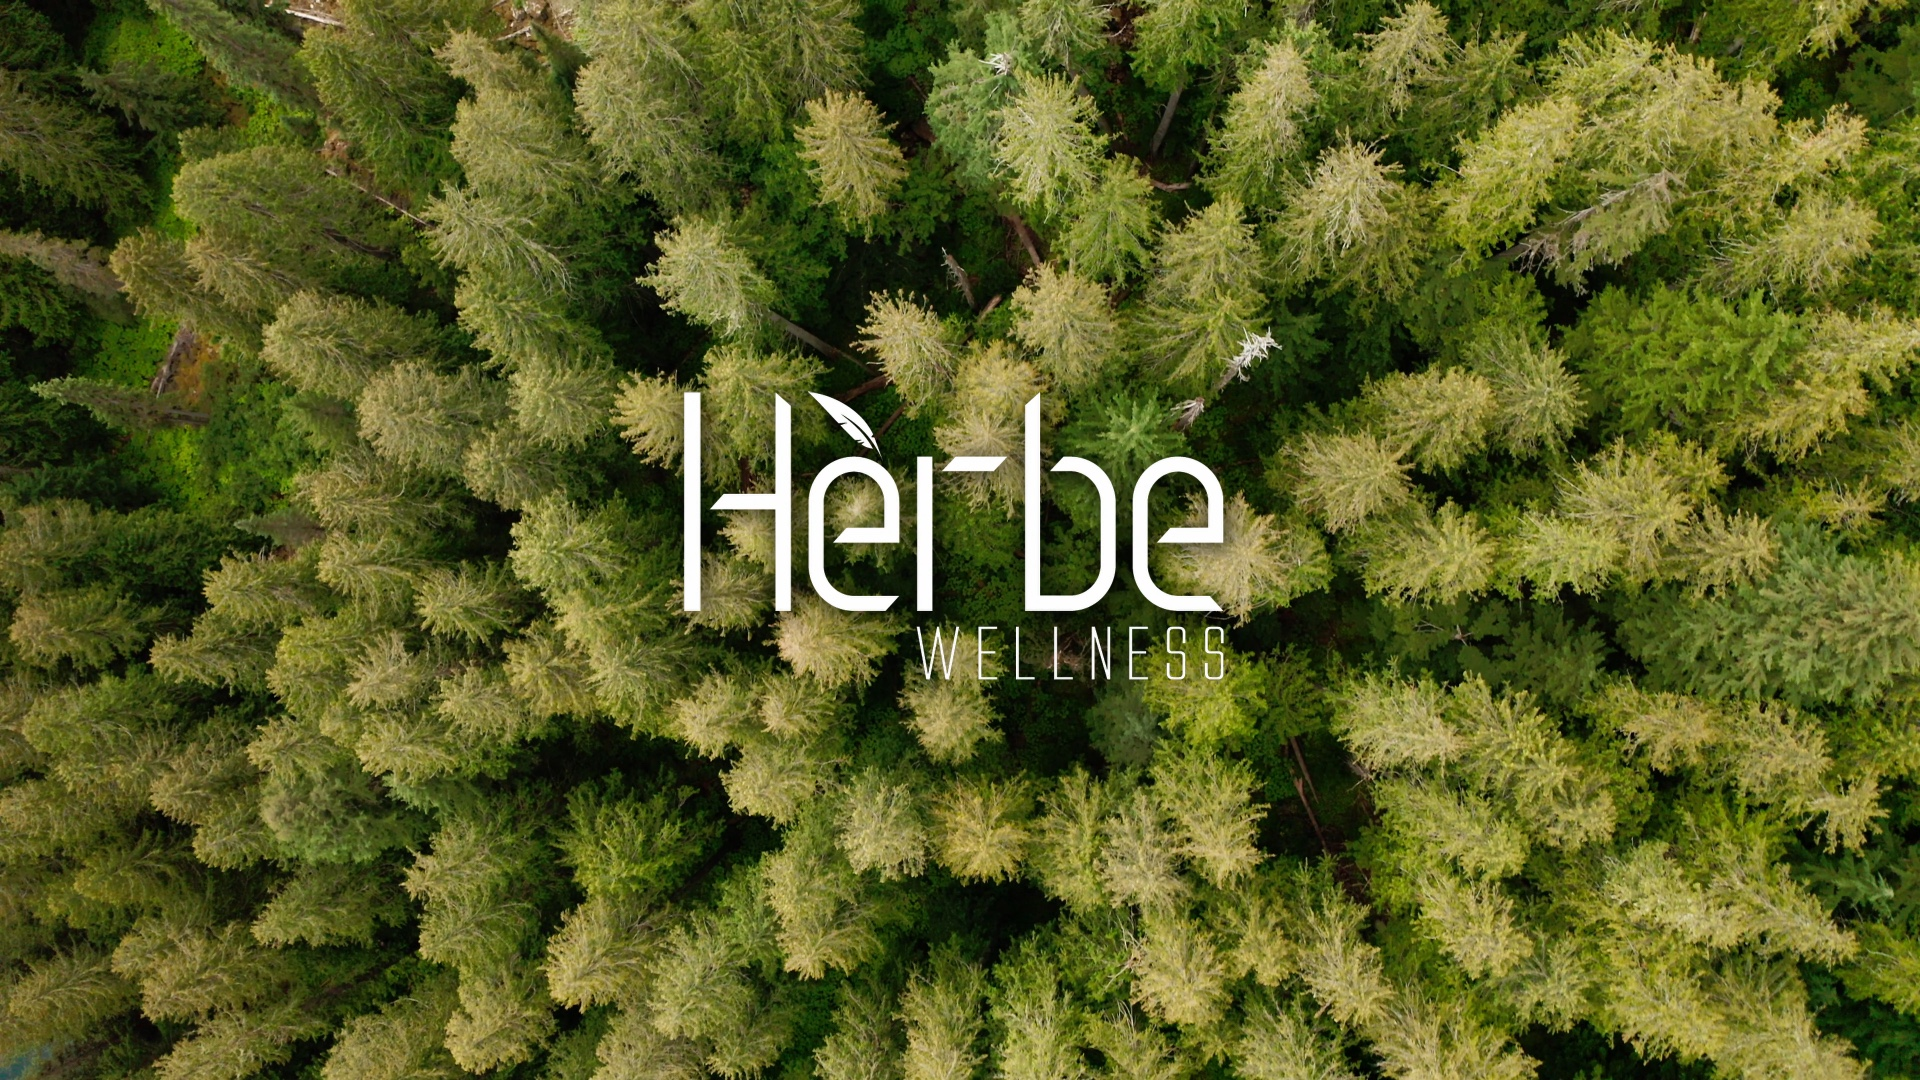 herbe wellness white text logo against aerial shot of forest